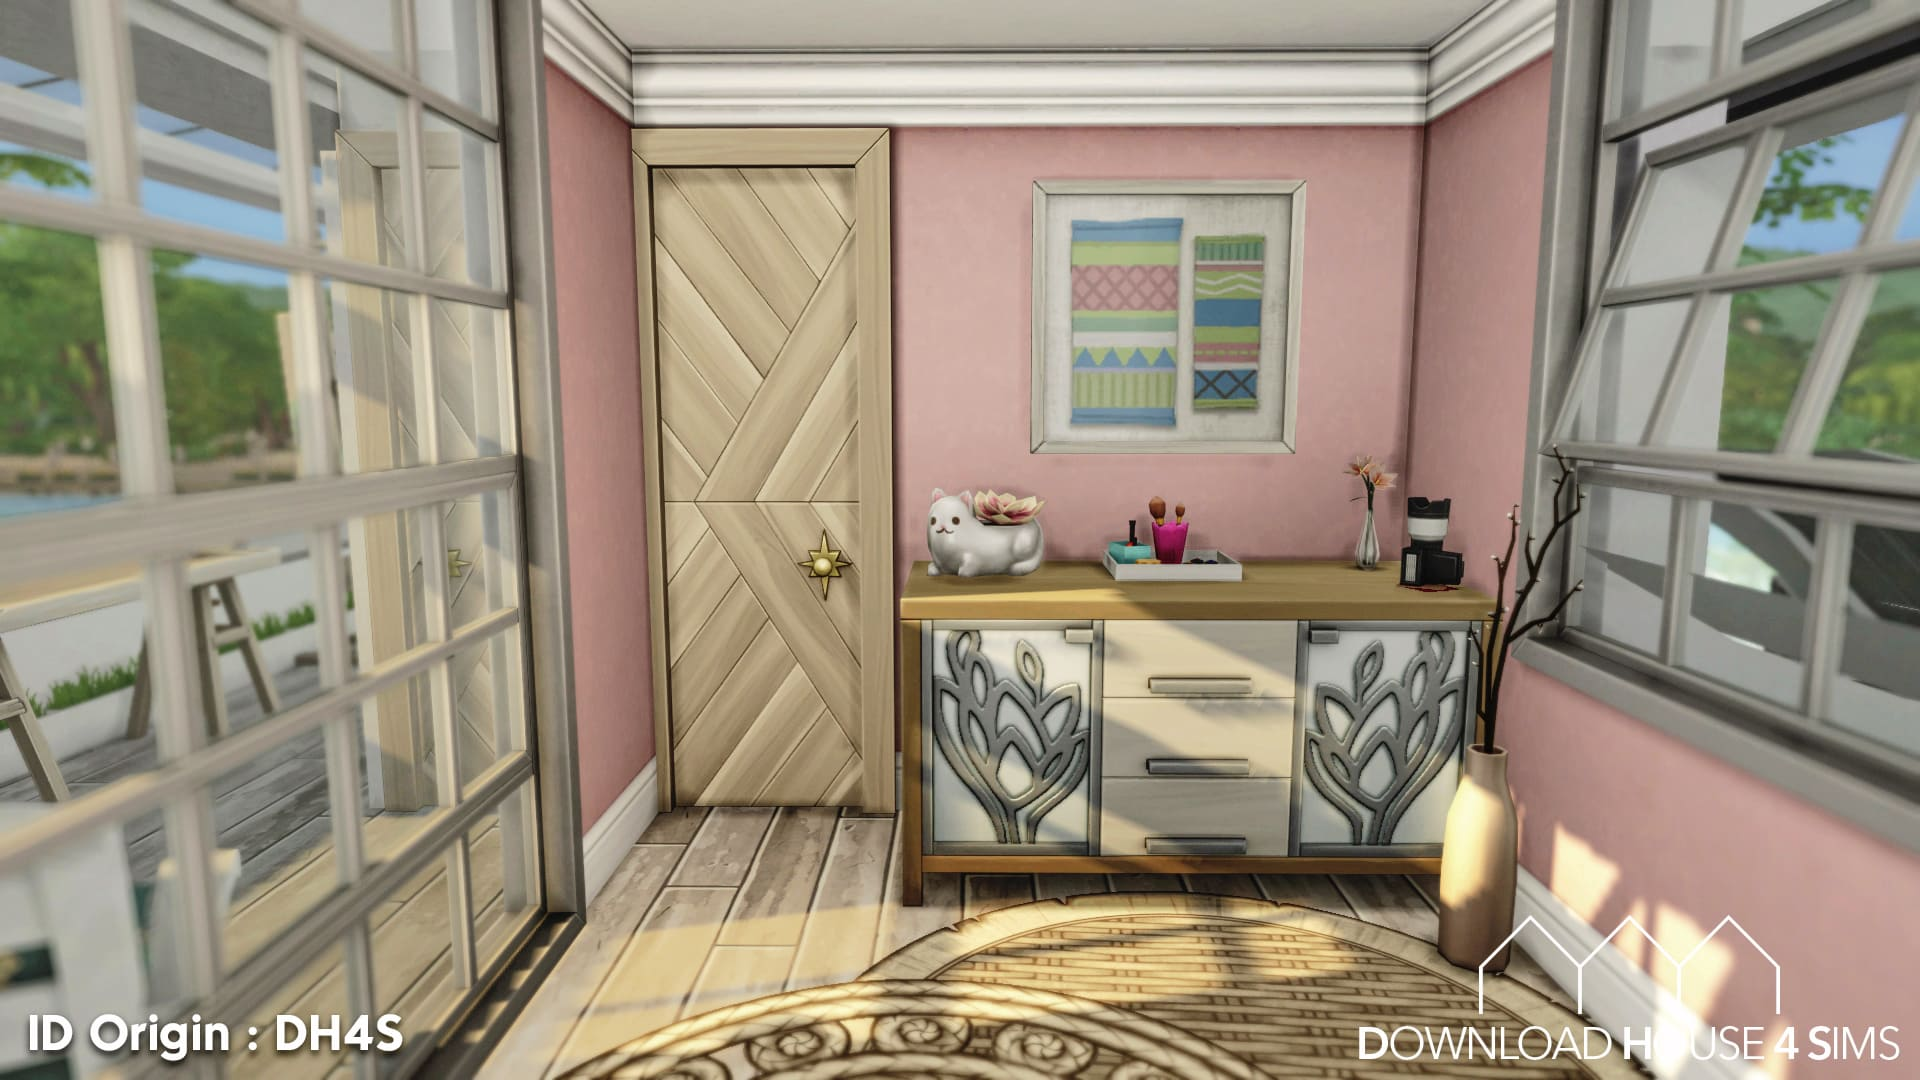 Family-Cottage-Sims-4-DH4S-download-house-4-sims-26